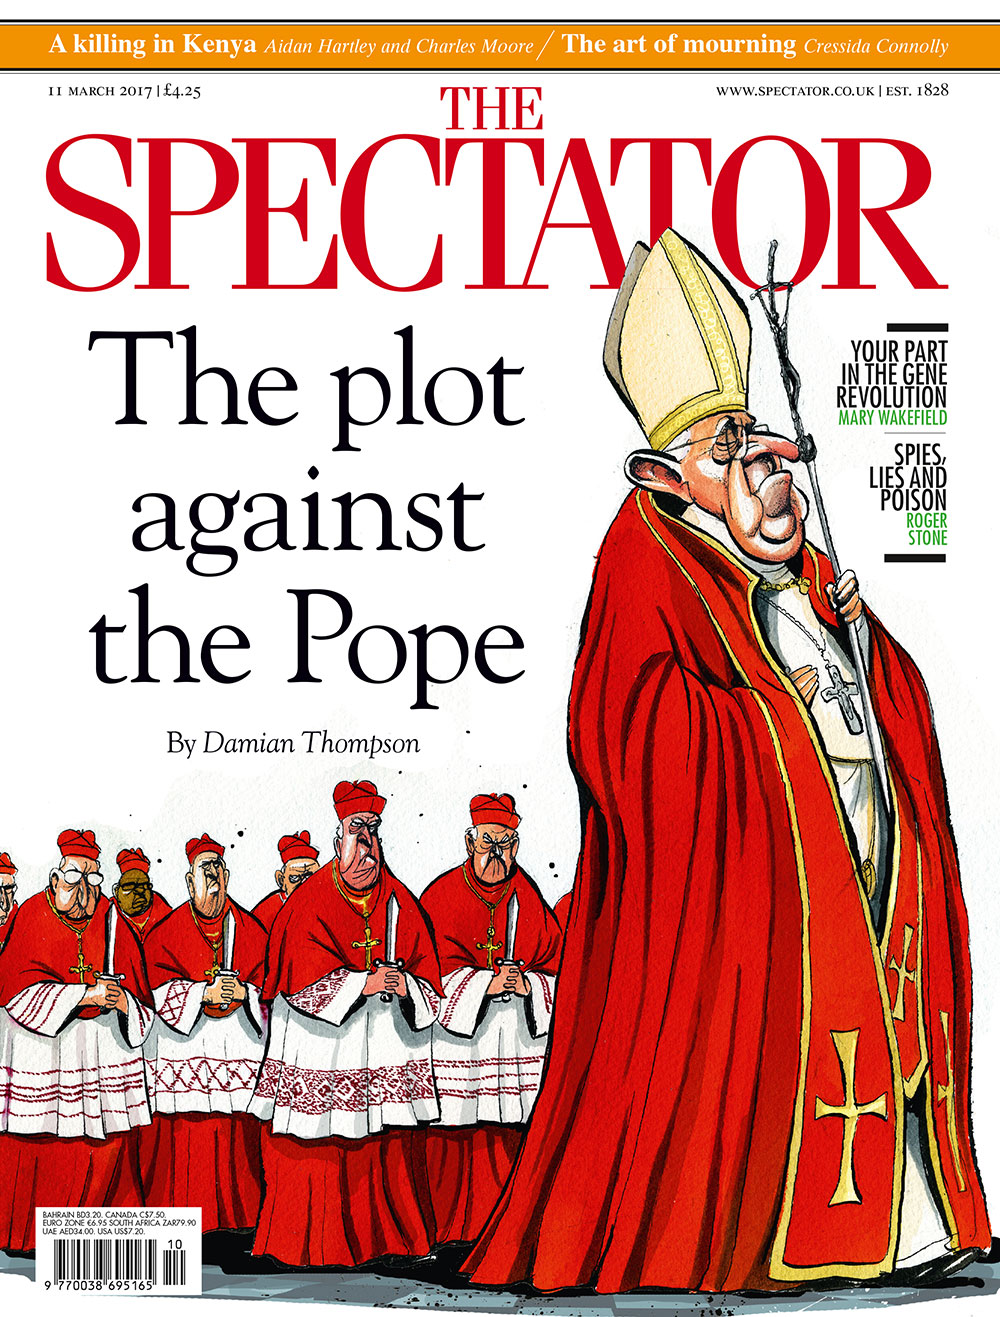 Issue: 11 March 2017 | The Spectator